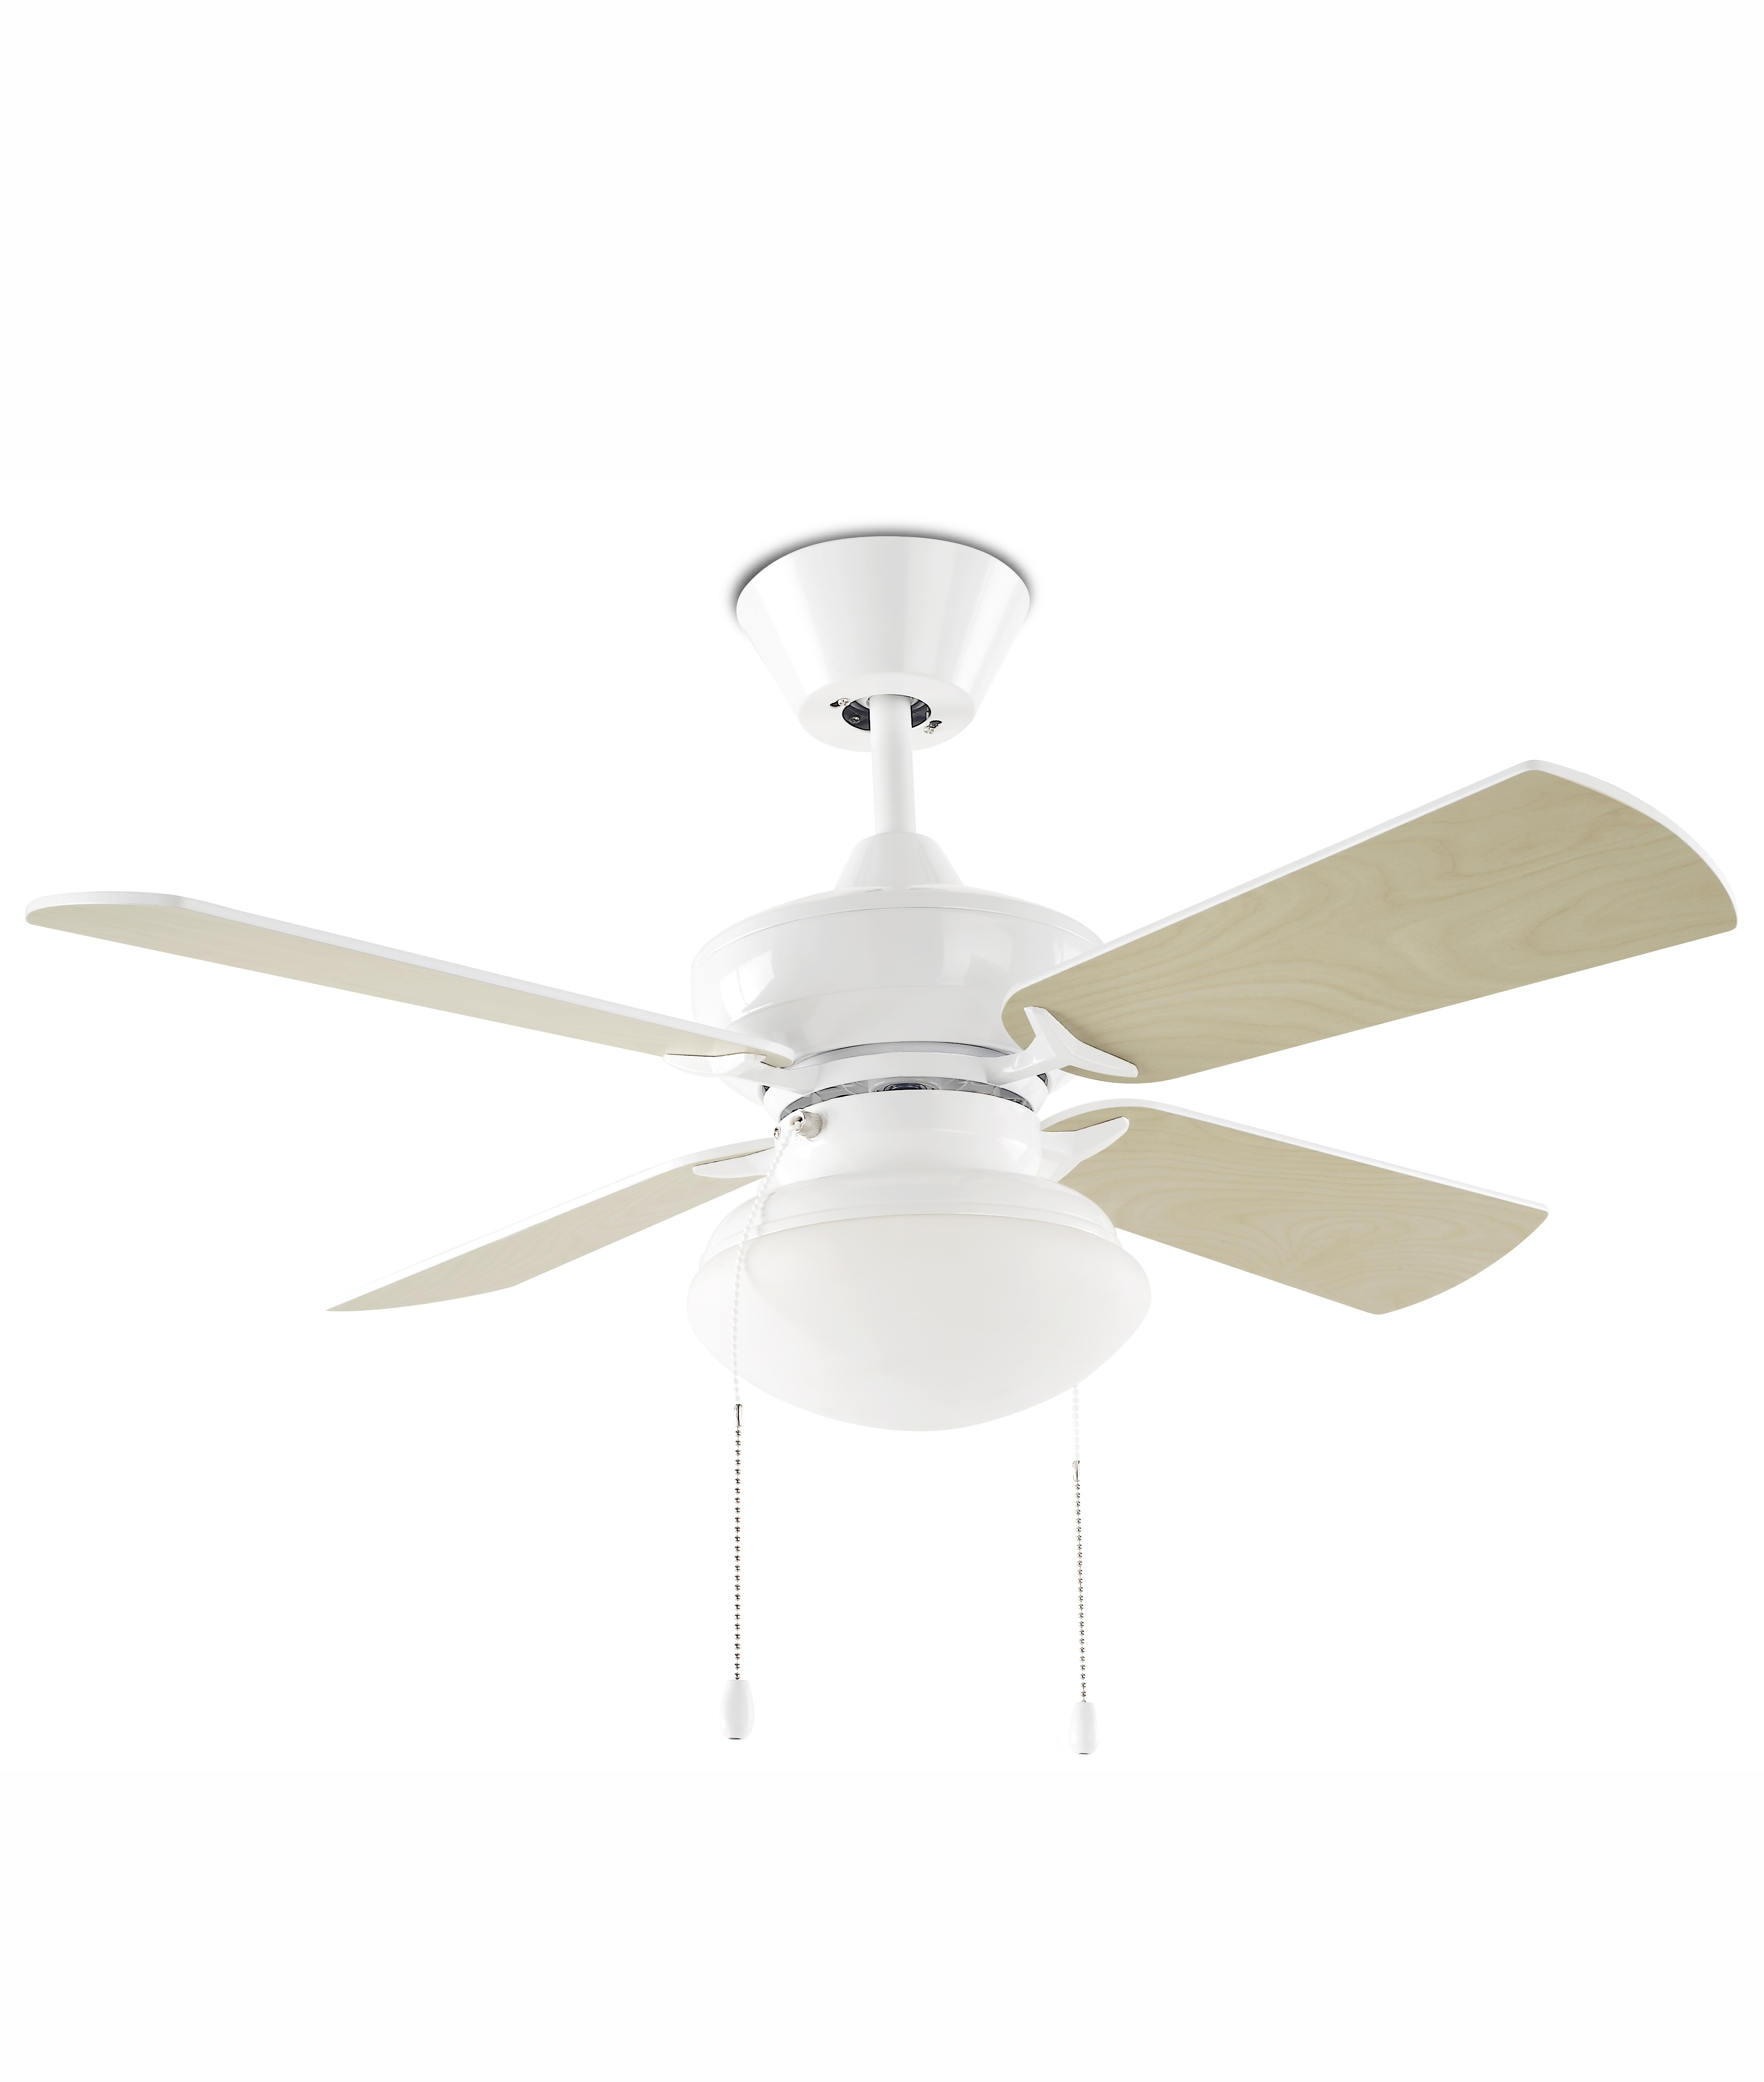 White Ceiling Fan With Four Reversible Blades And